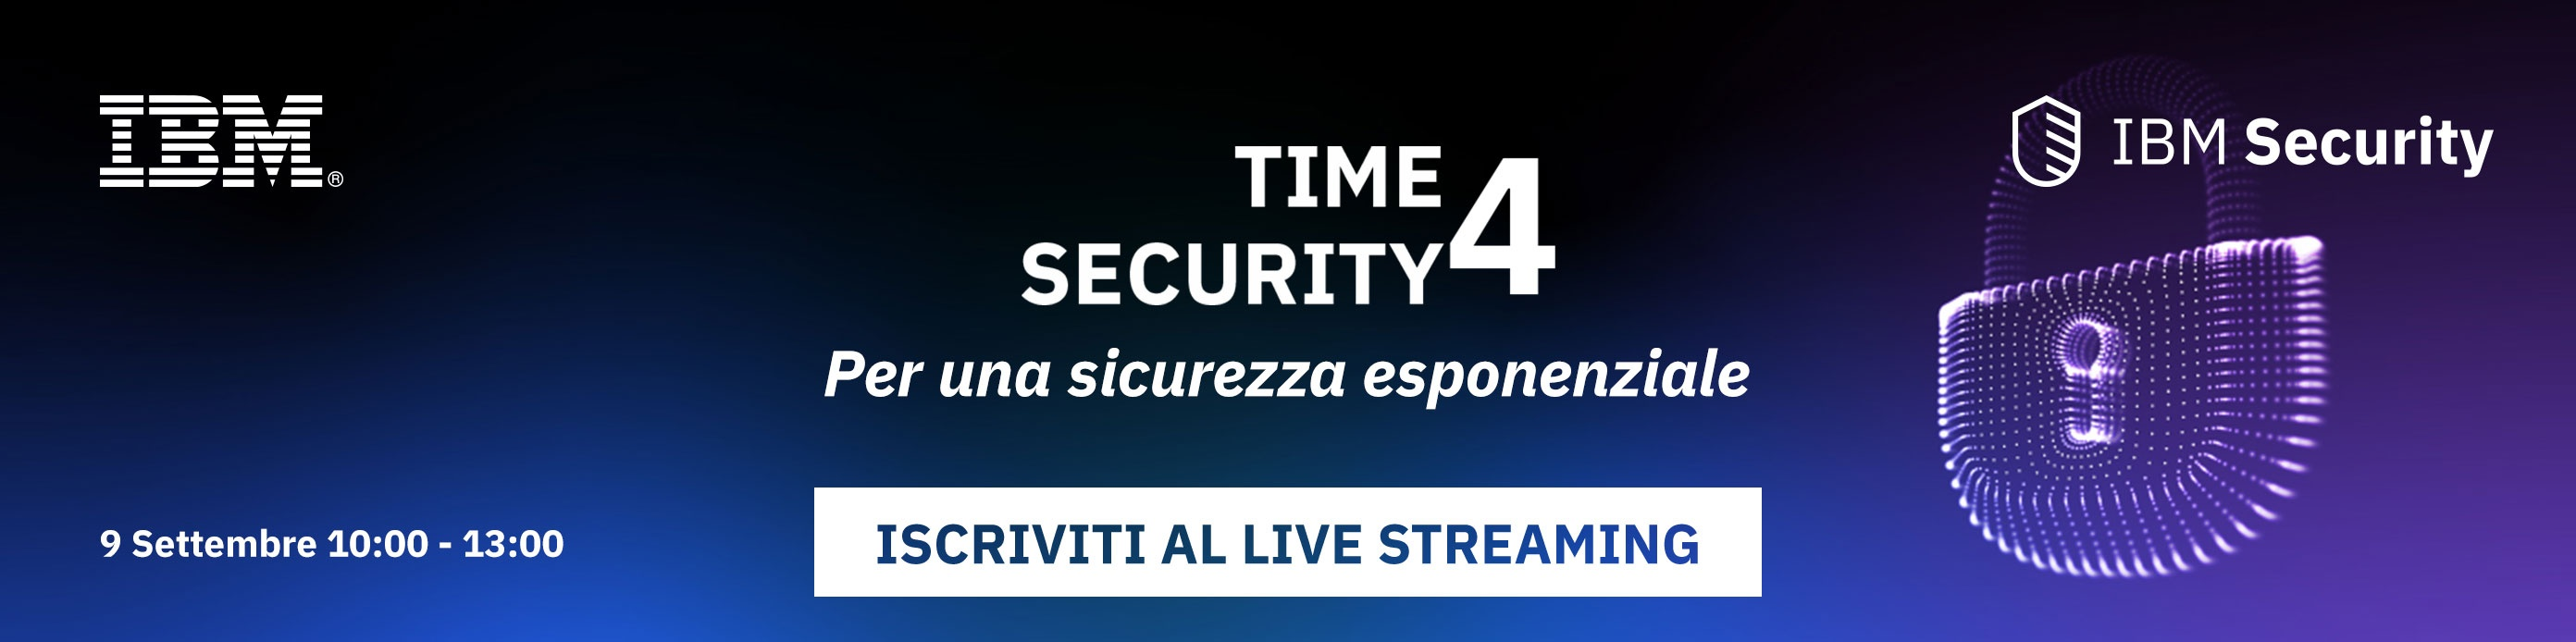 Time4Security - Iscriviti al live streaming